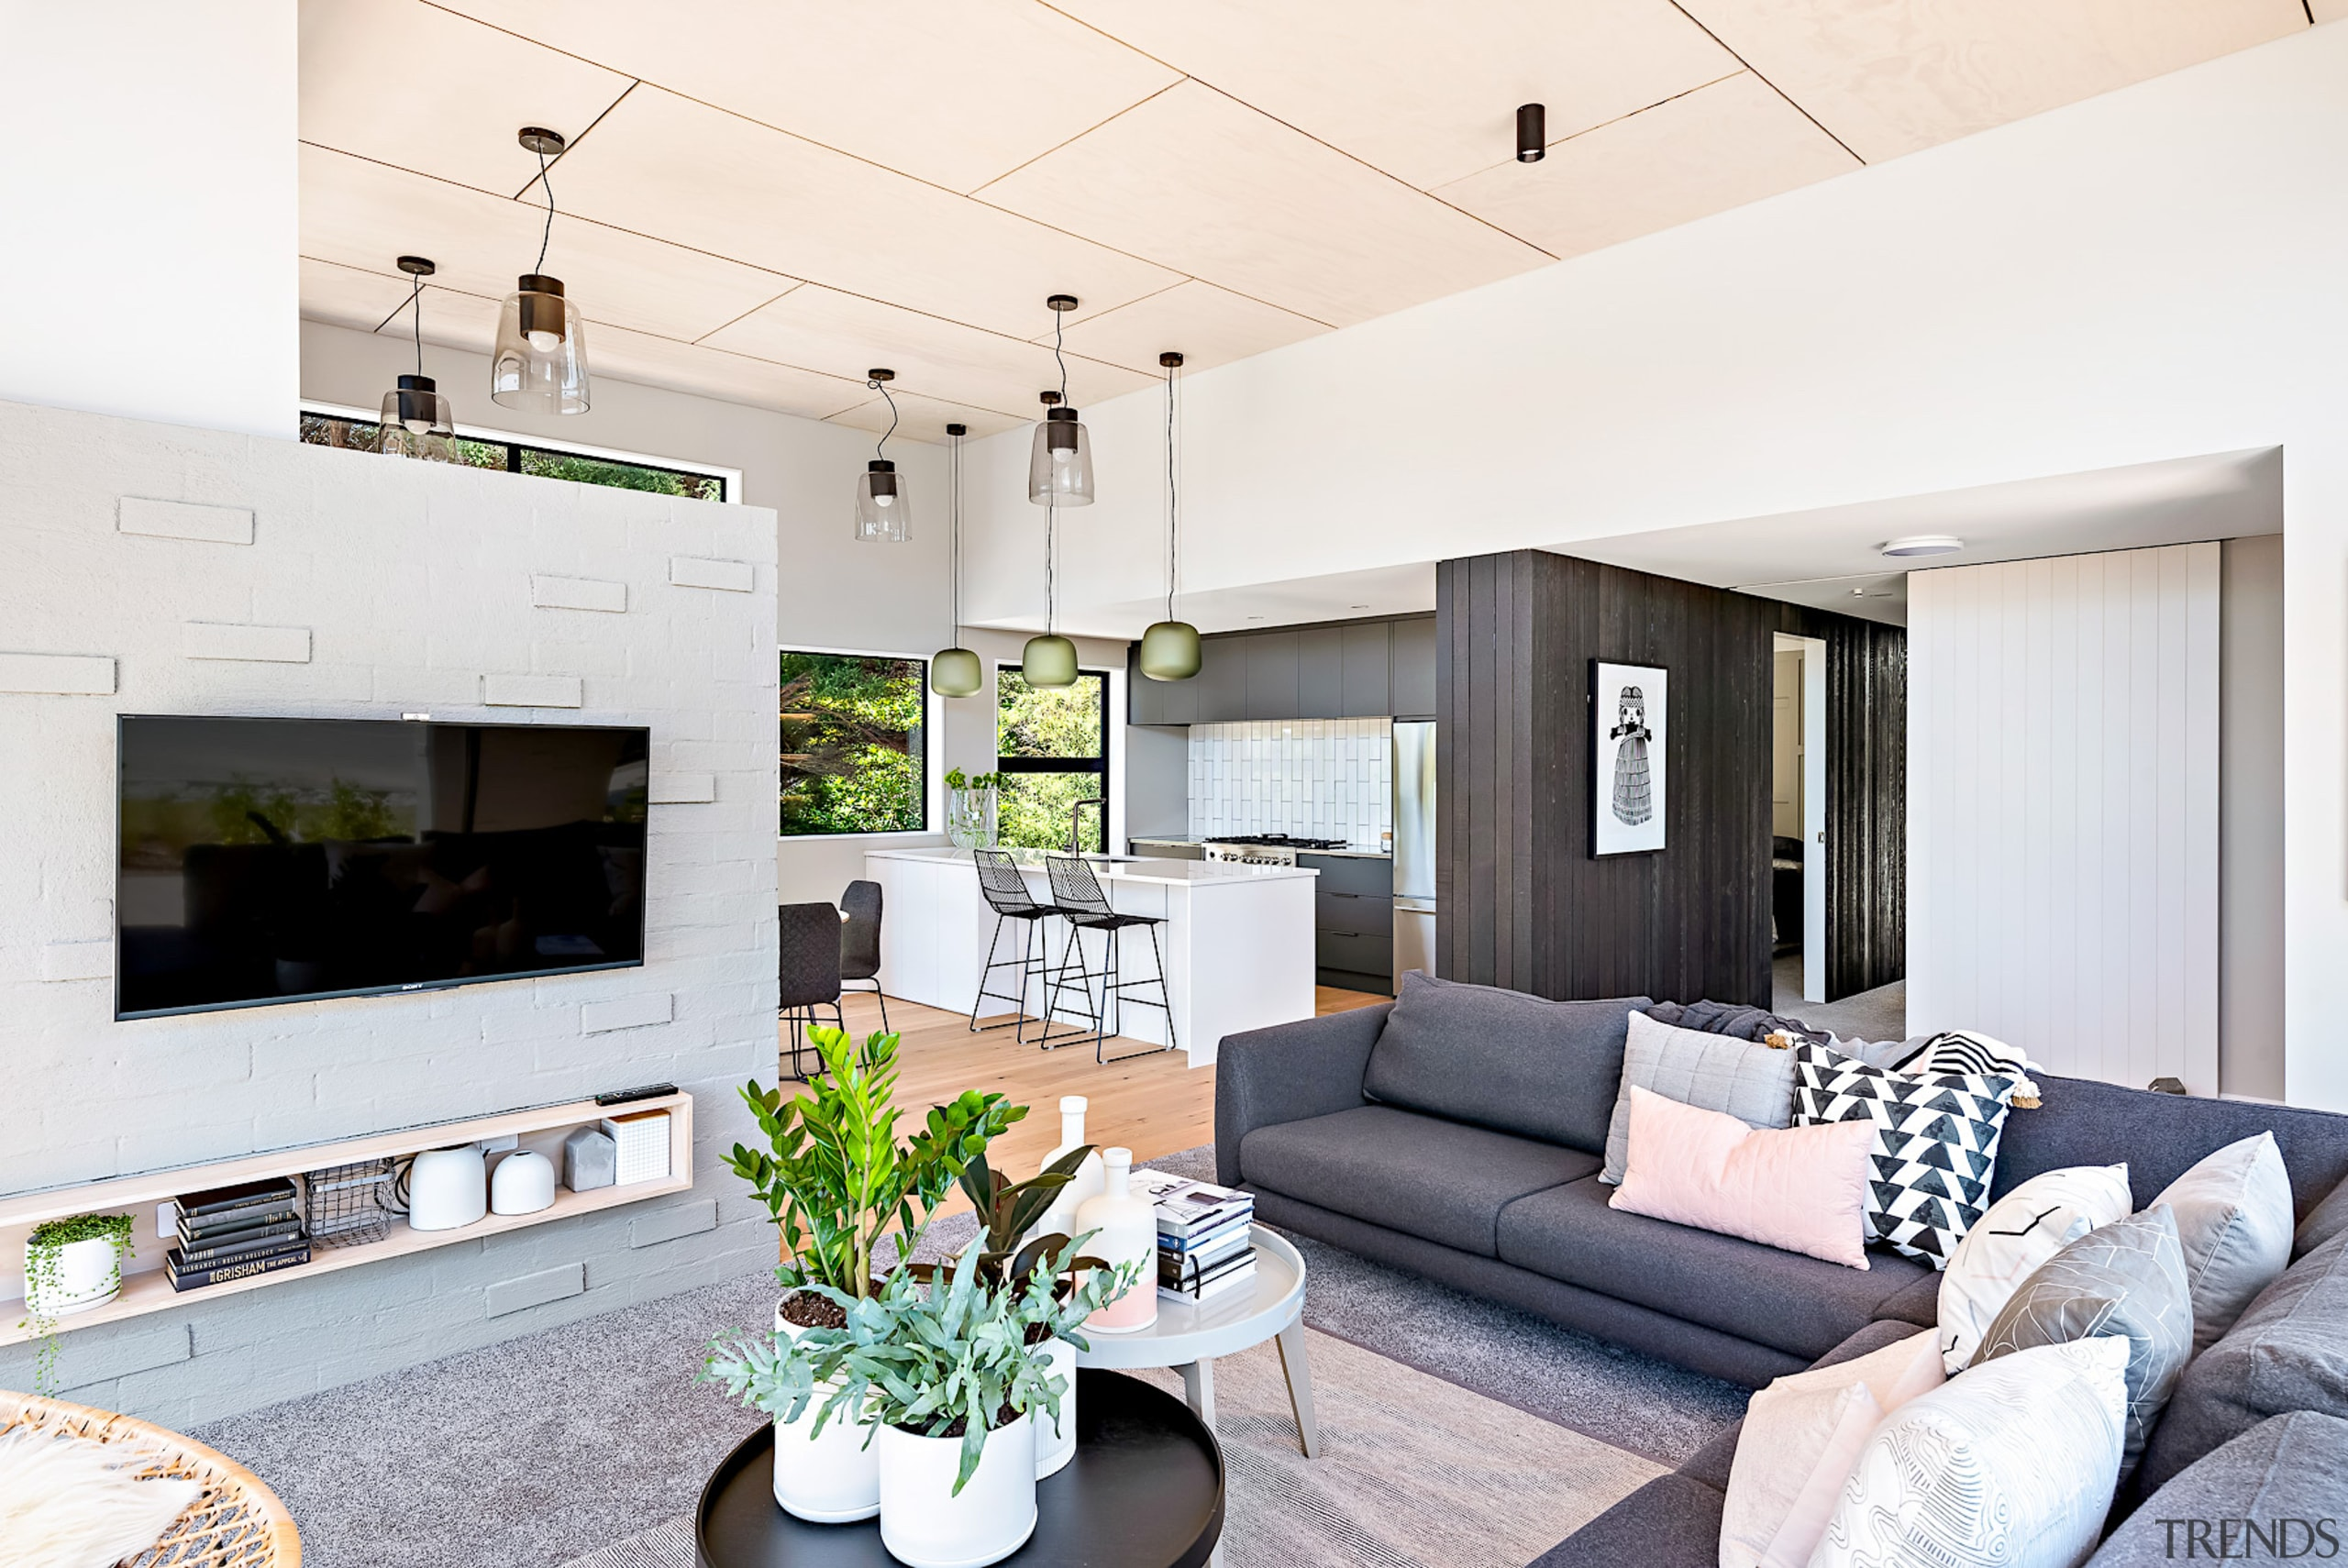 The home's contemporary styling – with a mix